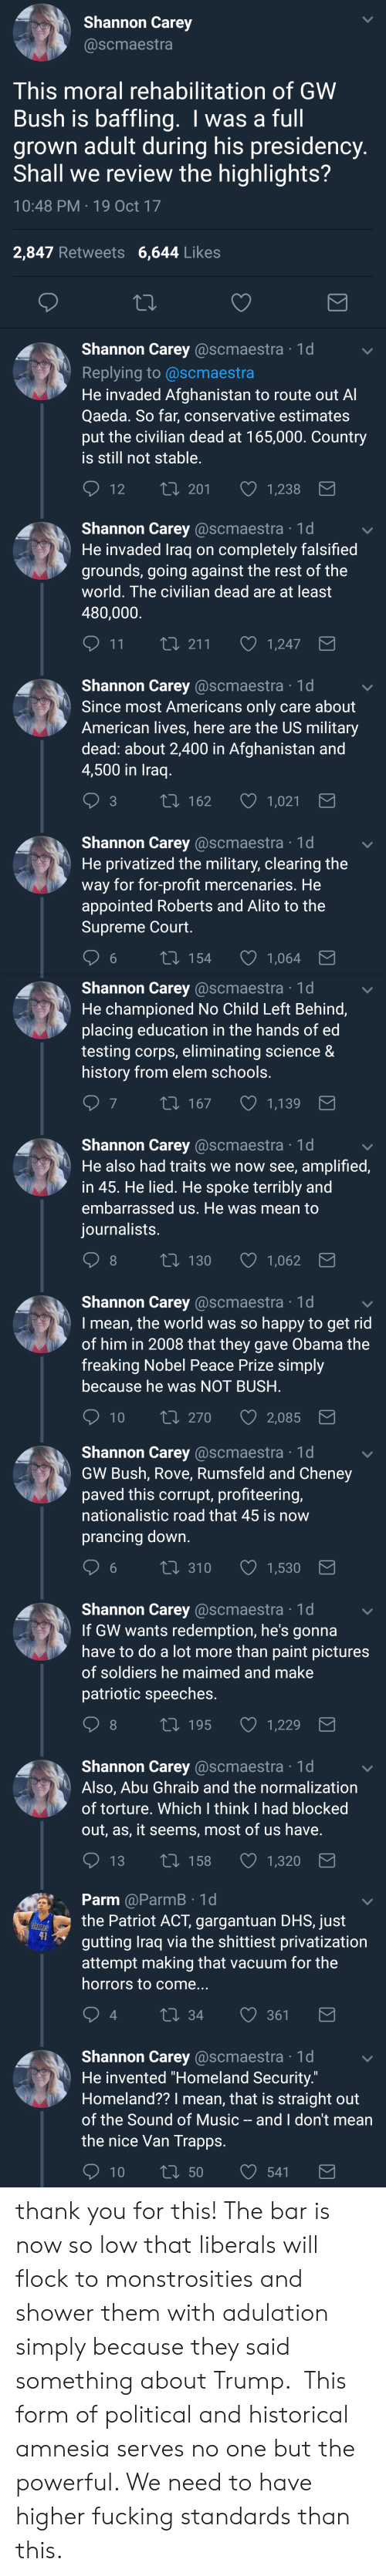 the patriot: Shannon Carey  @scmaestra  This moral rehabilitation of GWW  Bush is baffling. I was a full  grown adult during his presidency  Shall we review the highlights?  10:48 PM 19 Oct 17  2,847 Retweets 6,644 Likes  Shannon Carey @scmaestra 1d  Replying to @scmaestra  He invaded Afghanistan to route out A  Qaeda. So far, conservative estimates  put the civilian dead at 165,000. Country  is still not stable  12 T  t0 201 1,238   Shannon Carey @scmaestra 1d  He invaded Traq on completely falsified  grounds, going against the rest of the  world. The civilian dead are at least  480,000  11  1,247  Shannon Carey @scmaestra 1d  Since most Americans only care about  American lives, here are the US military  dead: about 2,400 in Afghanistan and  4,500 in Iraq  t 162  1,021  Shannon Carey @scmaestra 1d  He privatized the military, clearing the  way for for-profit mercenaries. He  appointed Roberts and Alito to the  Supreme Court  6  154  1,064   Shannon Carey @scmaestra 1d  He championed No Child Left Behind,  placing education in the hands of ed  testing corps, eliminating science &  history from elem schools  7  167  1,139  Shannon Carey @scmaestra 1d  He also had traits we now see, amplified,  in 45. He lied. He spoke terribly and  embarrassed us. He was mean to  iournalists  8  130  1,062  Shannon Carey @scmaestra 1d  I mean, the world was so happy to get rid  of him in 2008 that they gave Obama the  freaking Nobel Peace Prize simply  because he was NOT BUSH  10 ti 270  2,085   Shannon Carey @scmaestra 1d  GW Bush, Rove, Rumsfeld and Cheney  paved this corrupt, profiteering,  nationalistic road that 45 is now  prancing down  6 t0 310 1,530  Shannon Carey @scmaestra 1d  If GW wants redemption, he's gonna  have to do a lot more than paint pictures  of soldiers he maimed and make  patriotic speeches  8  t 195  1,229  Shannon Carey @scmaestra 1d  Also, Abu Ghraib and the normalization  of torture. Which I think I had blocked  out, as, it seems, most of us have  13 t0 1